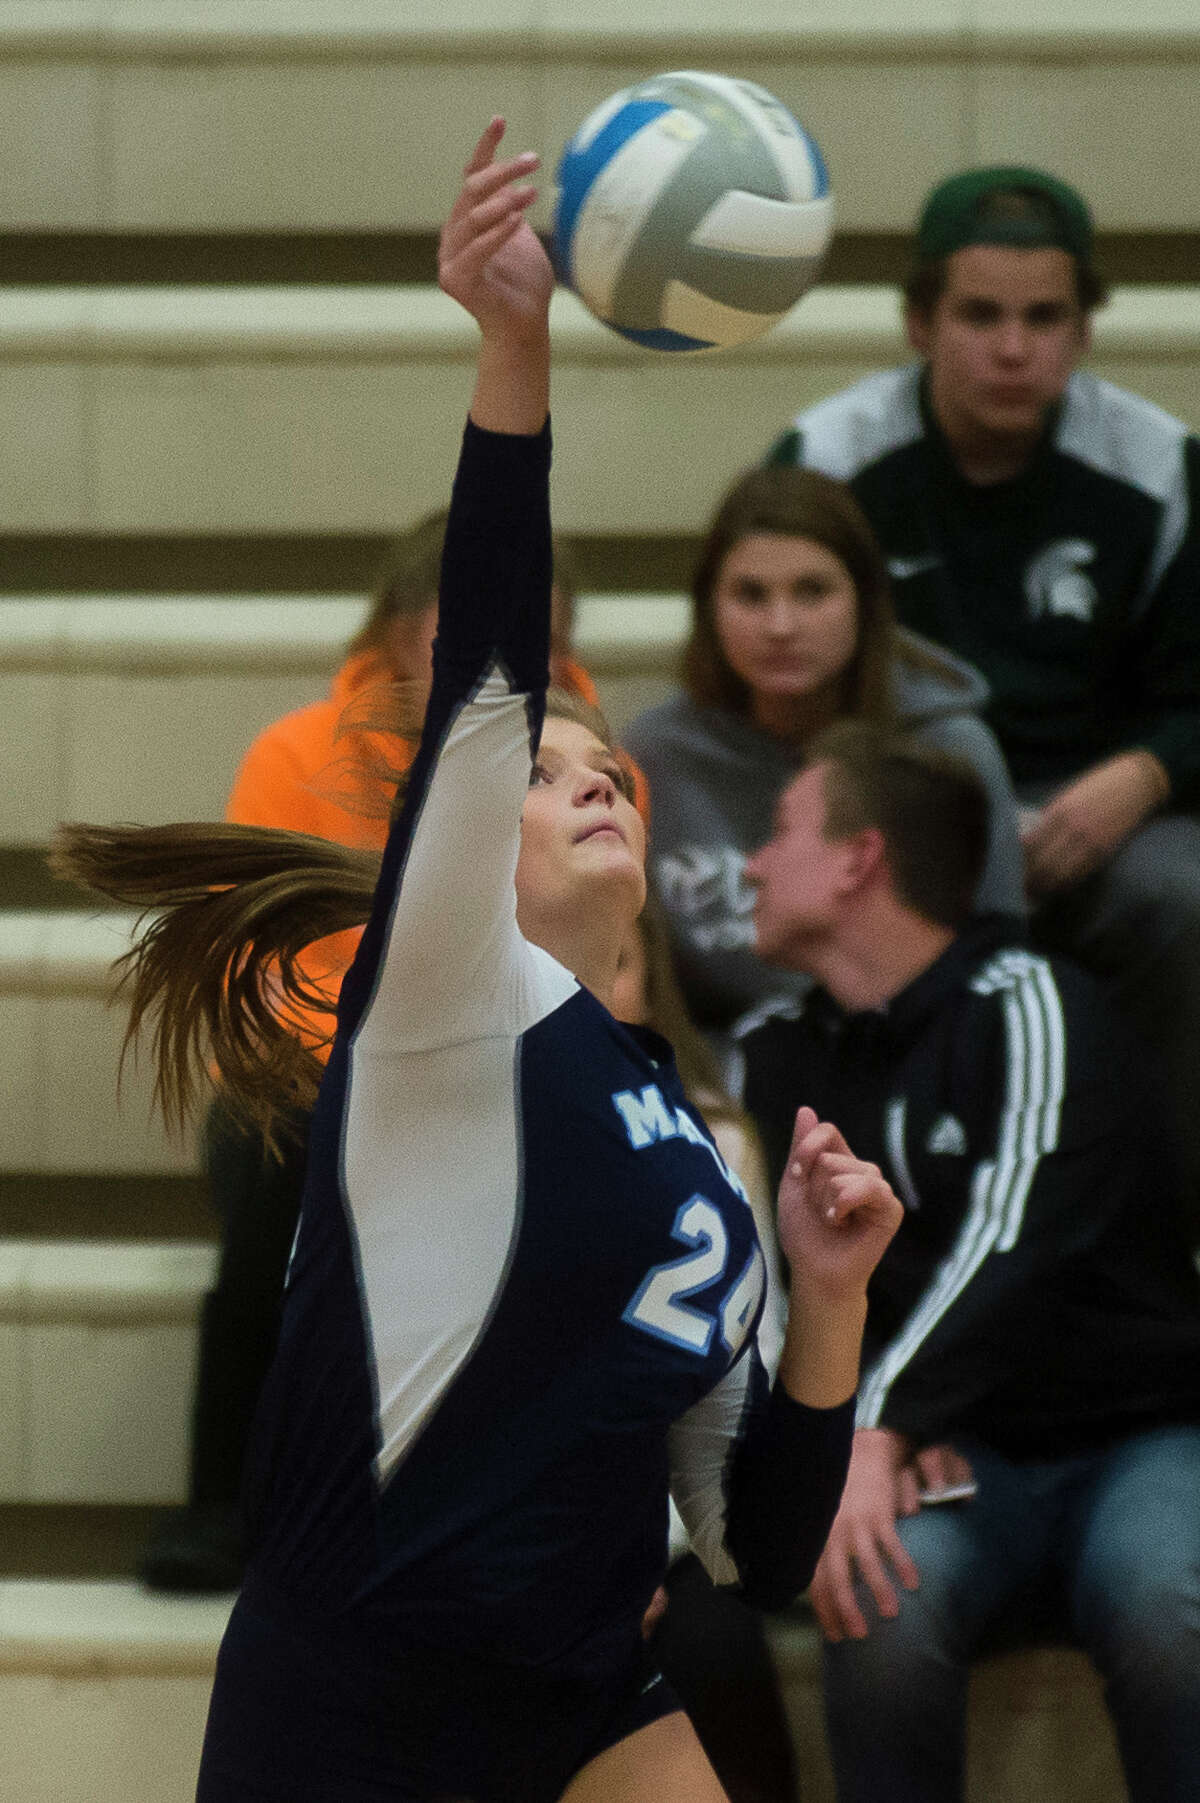 Meridian junior Baleigh Hill spikes the ball during a game against Pinconning on Monday, Oct. 30, 2017 at Beaverton High School. (Katy Kildee/kkildee@mdn.net)